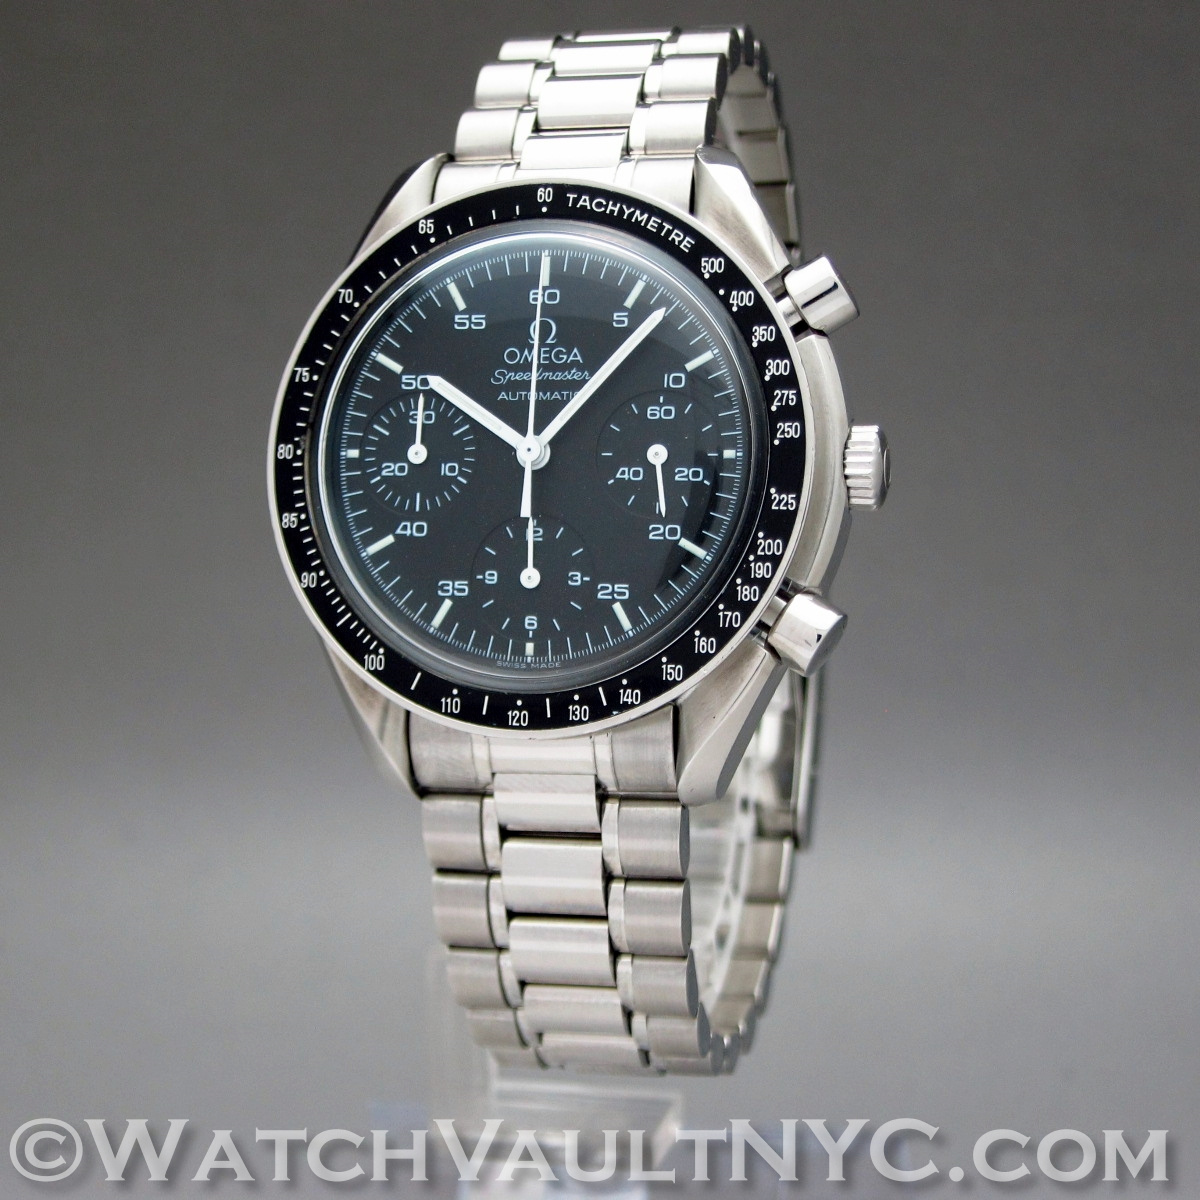 Prices for Omega watches | buy a Omega watch at a …